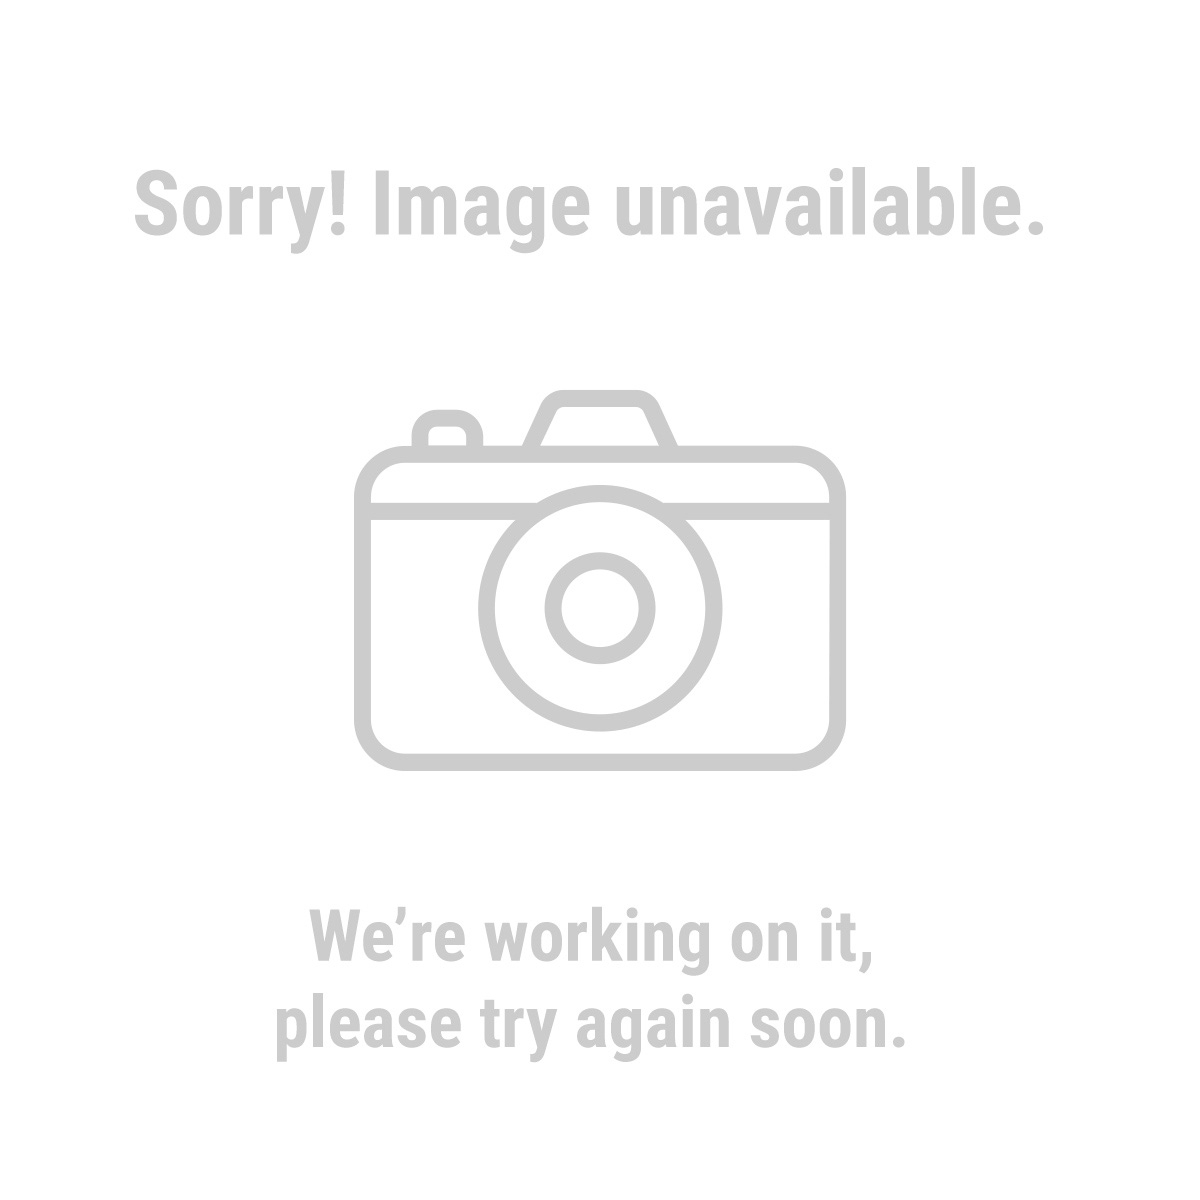 "Bunker Hill Security 67705 30 ft. x 3/8"" Braided Steel Security Cable"